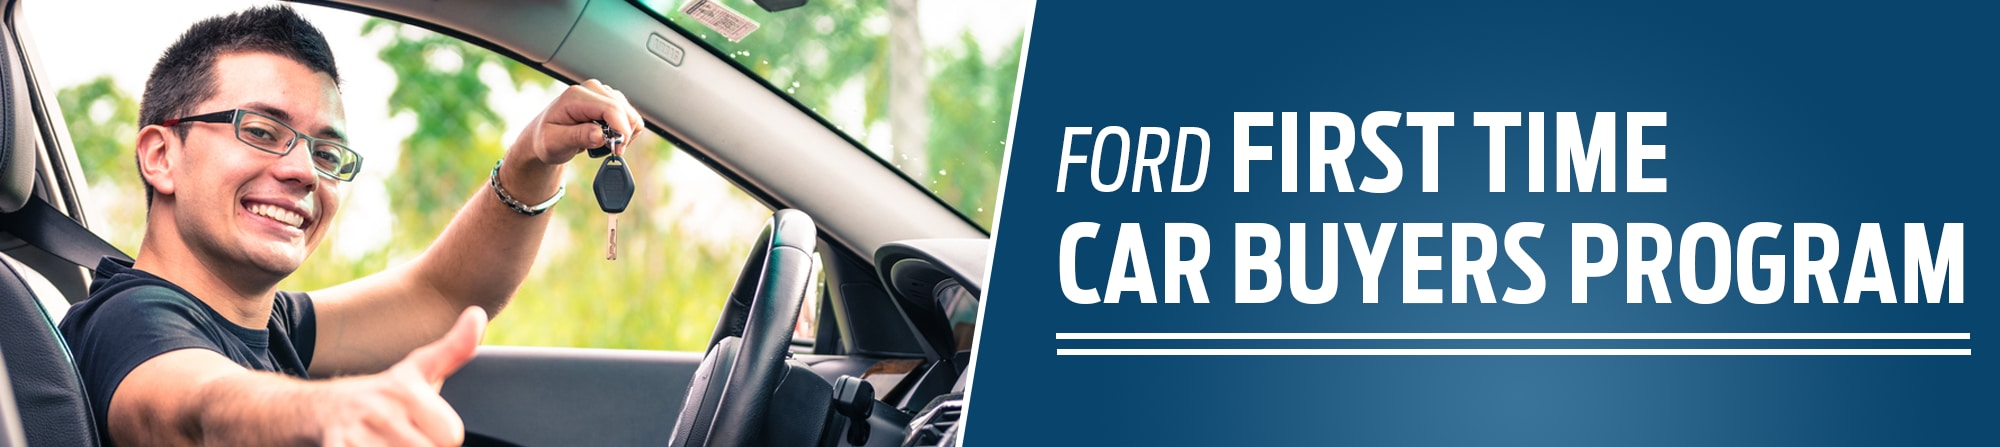 First Time Car Buyer Programs >> Ford First Time Car Buyer Program